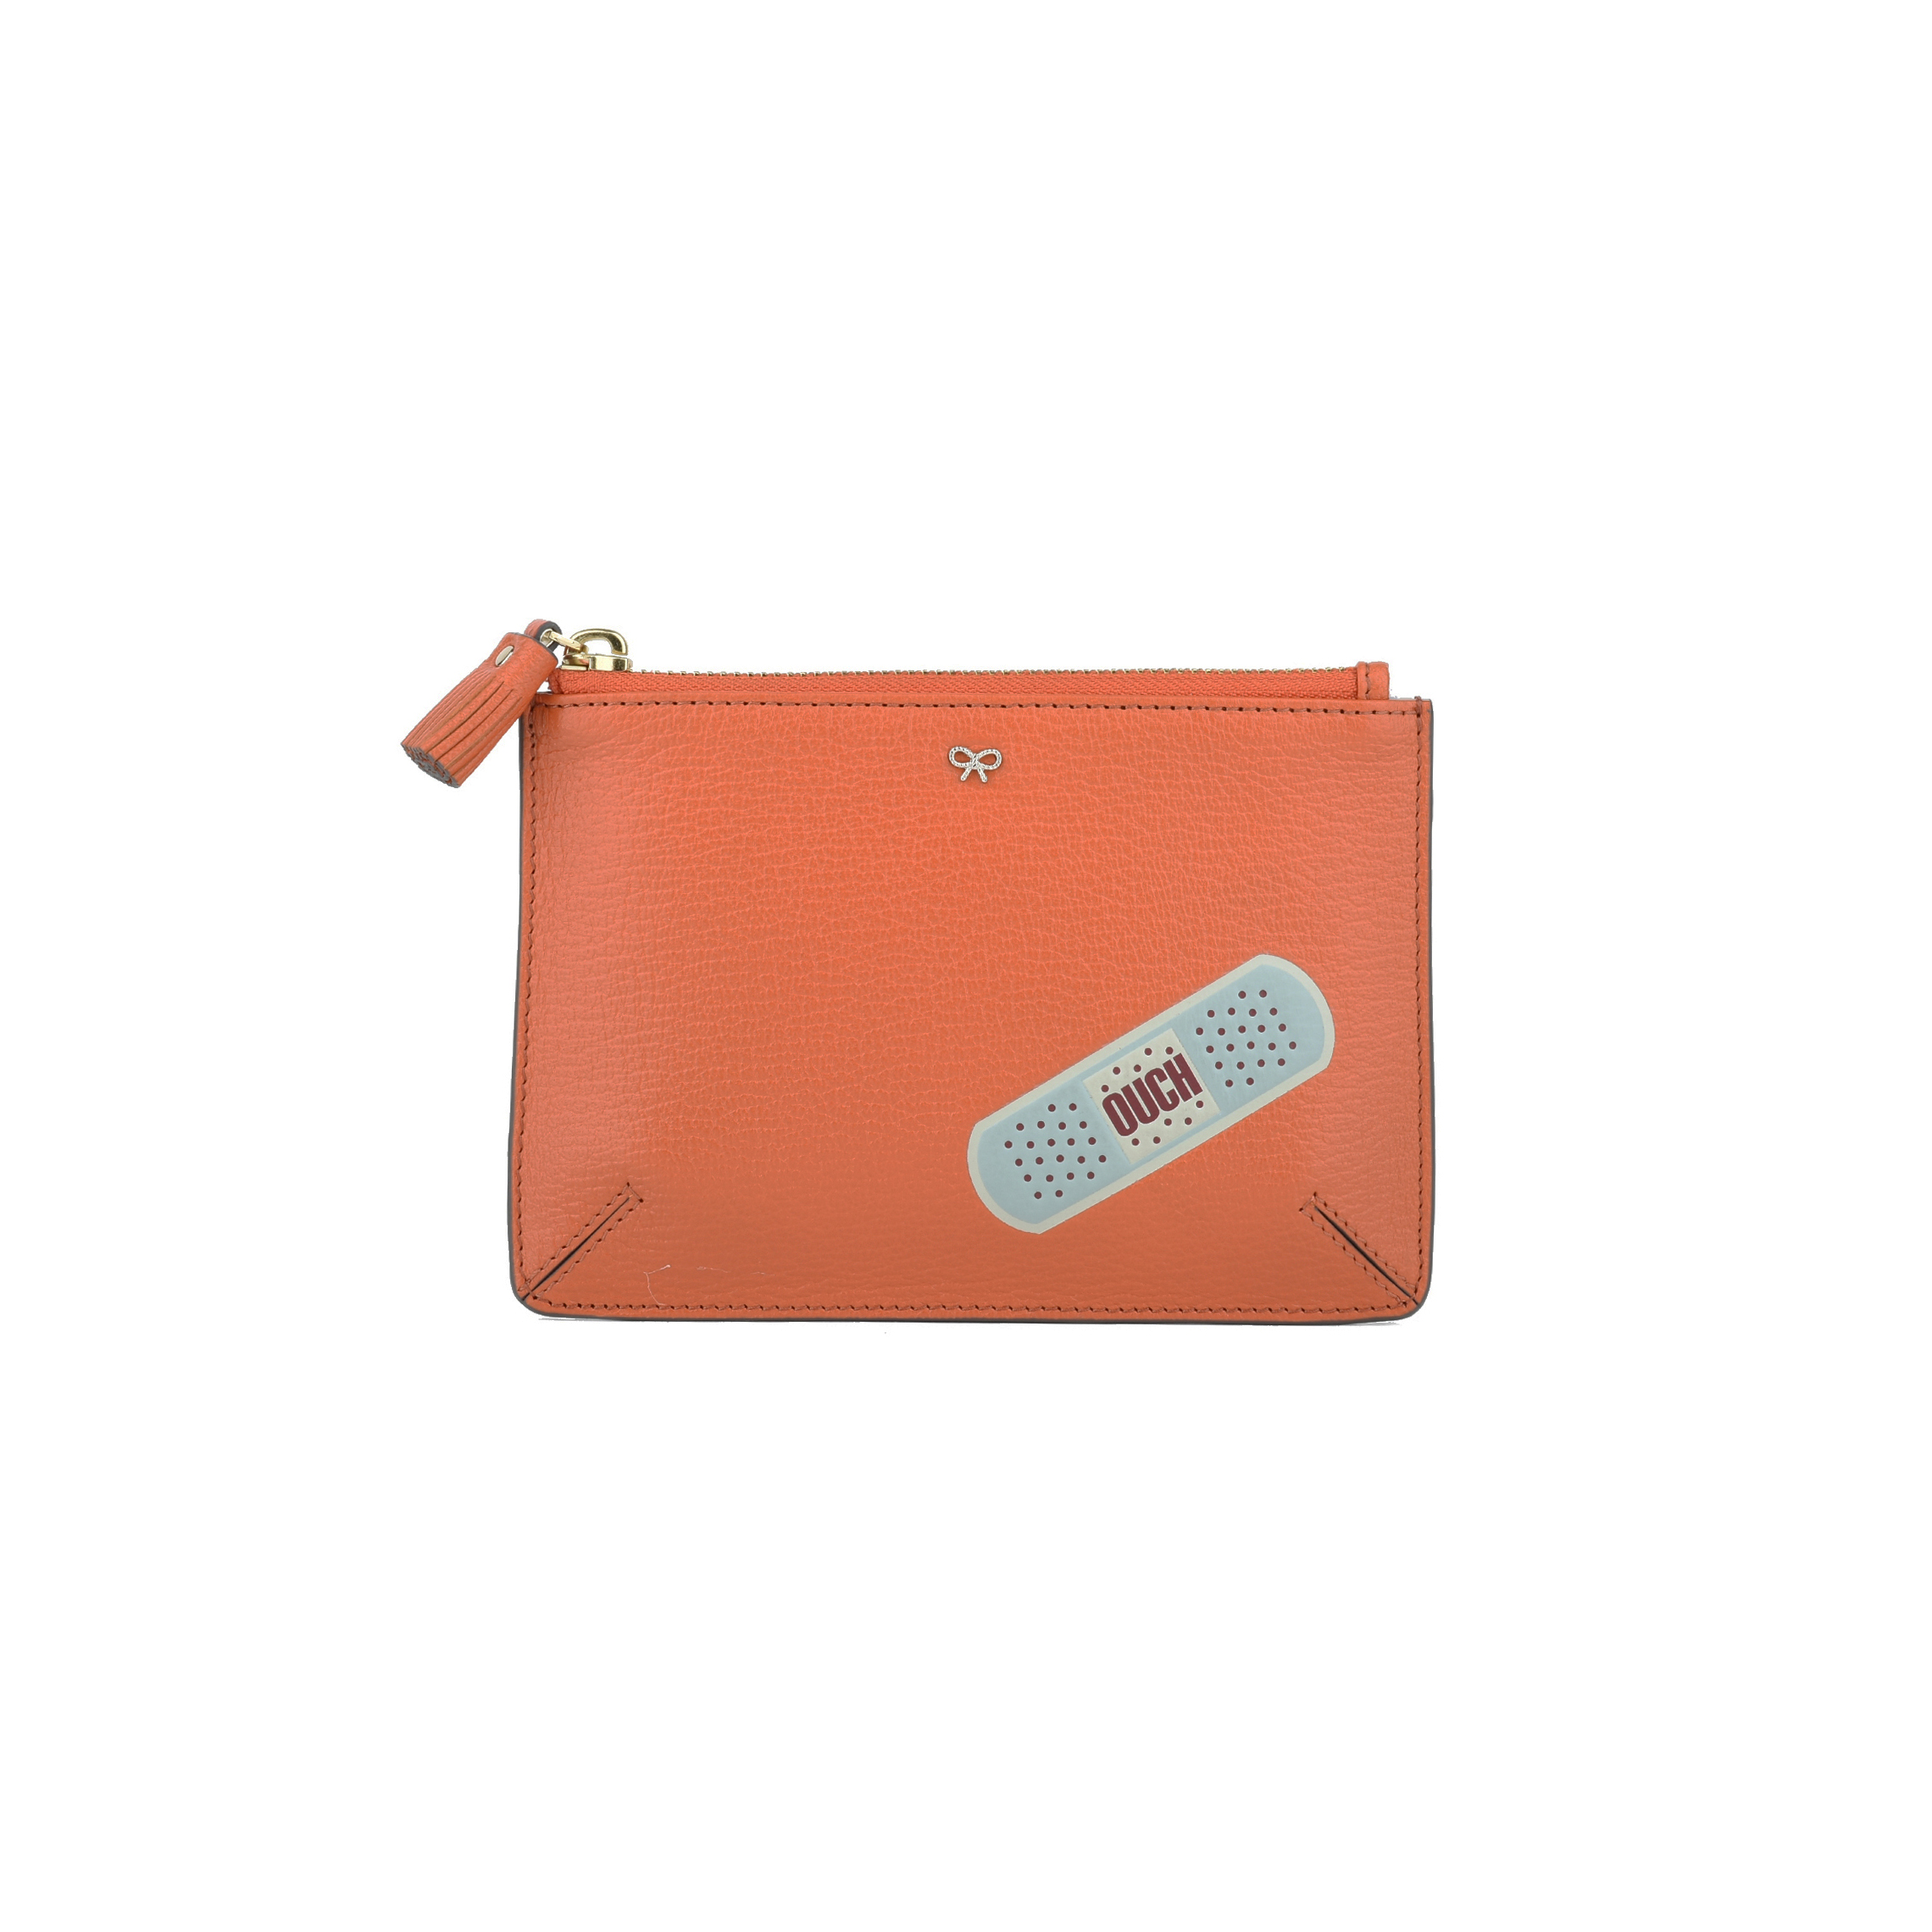 98e5dfbfabac Authentic Second Hand Anya Hindmarch Ouch Loose Pocket Pouch  (PSS-193-00134)